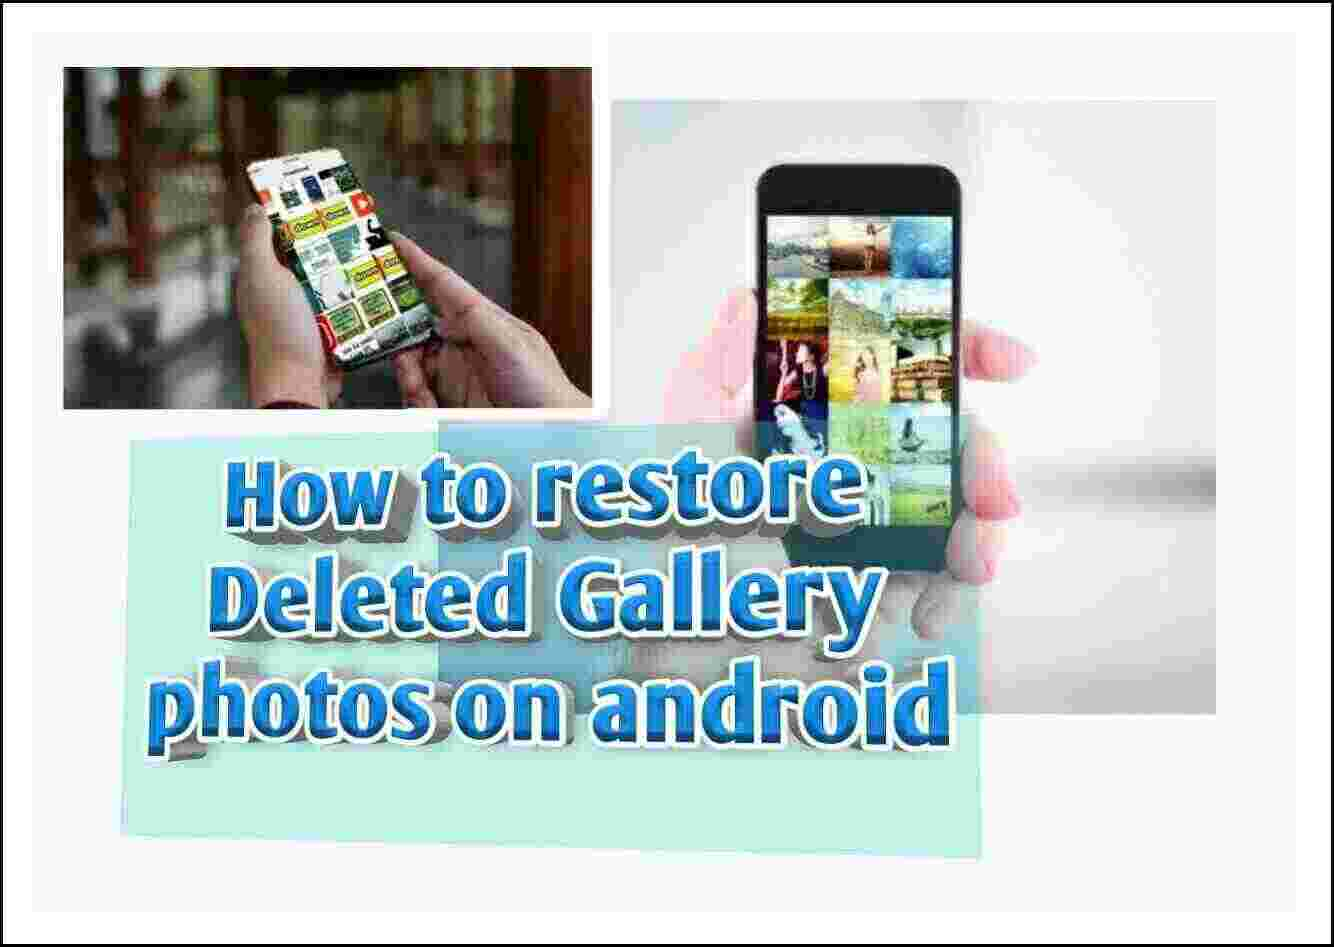 how to restore Deleted gallery photos on android, how to recover deleted photos from android